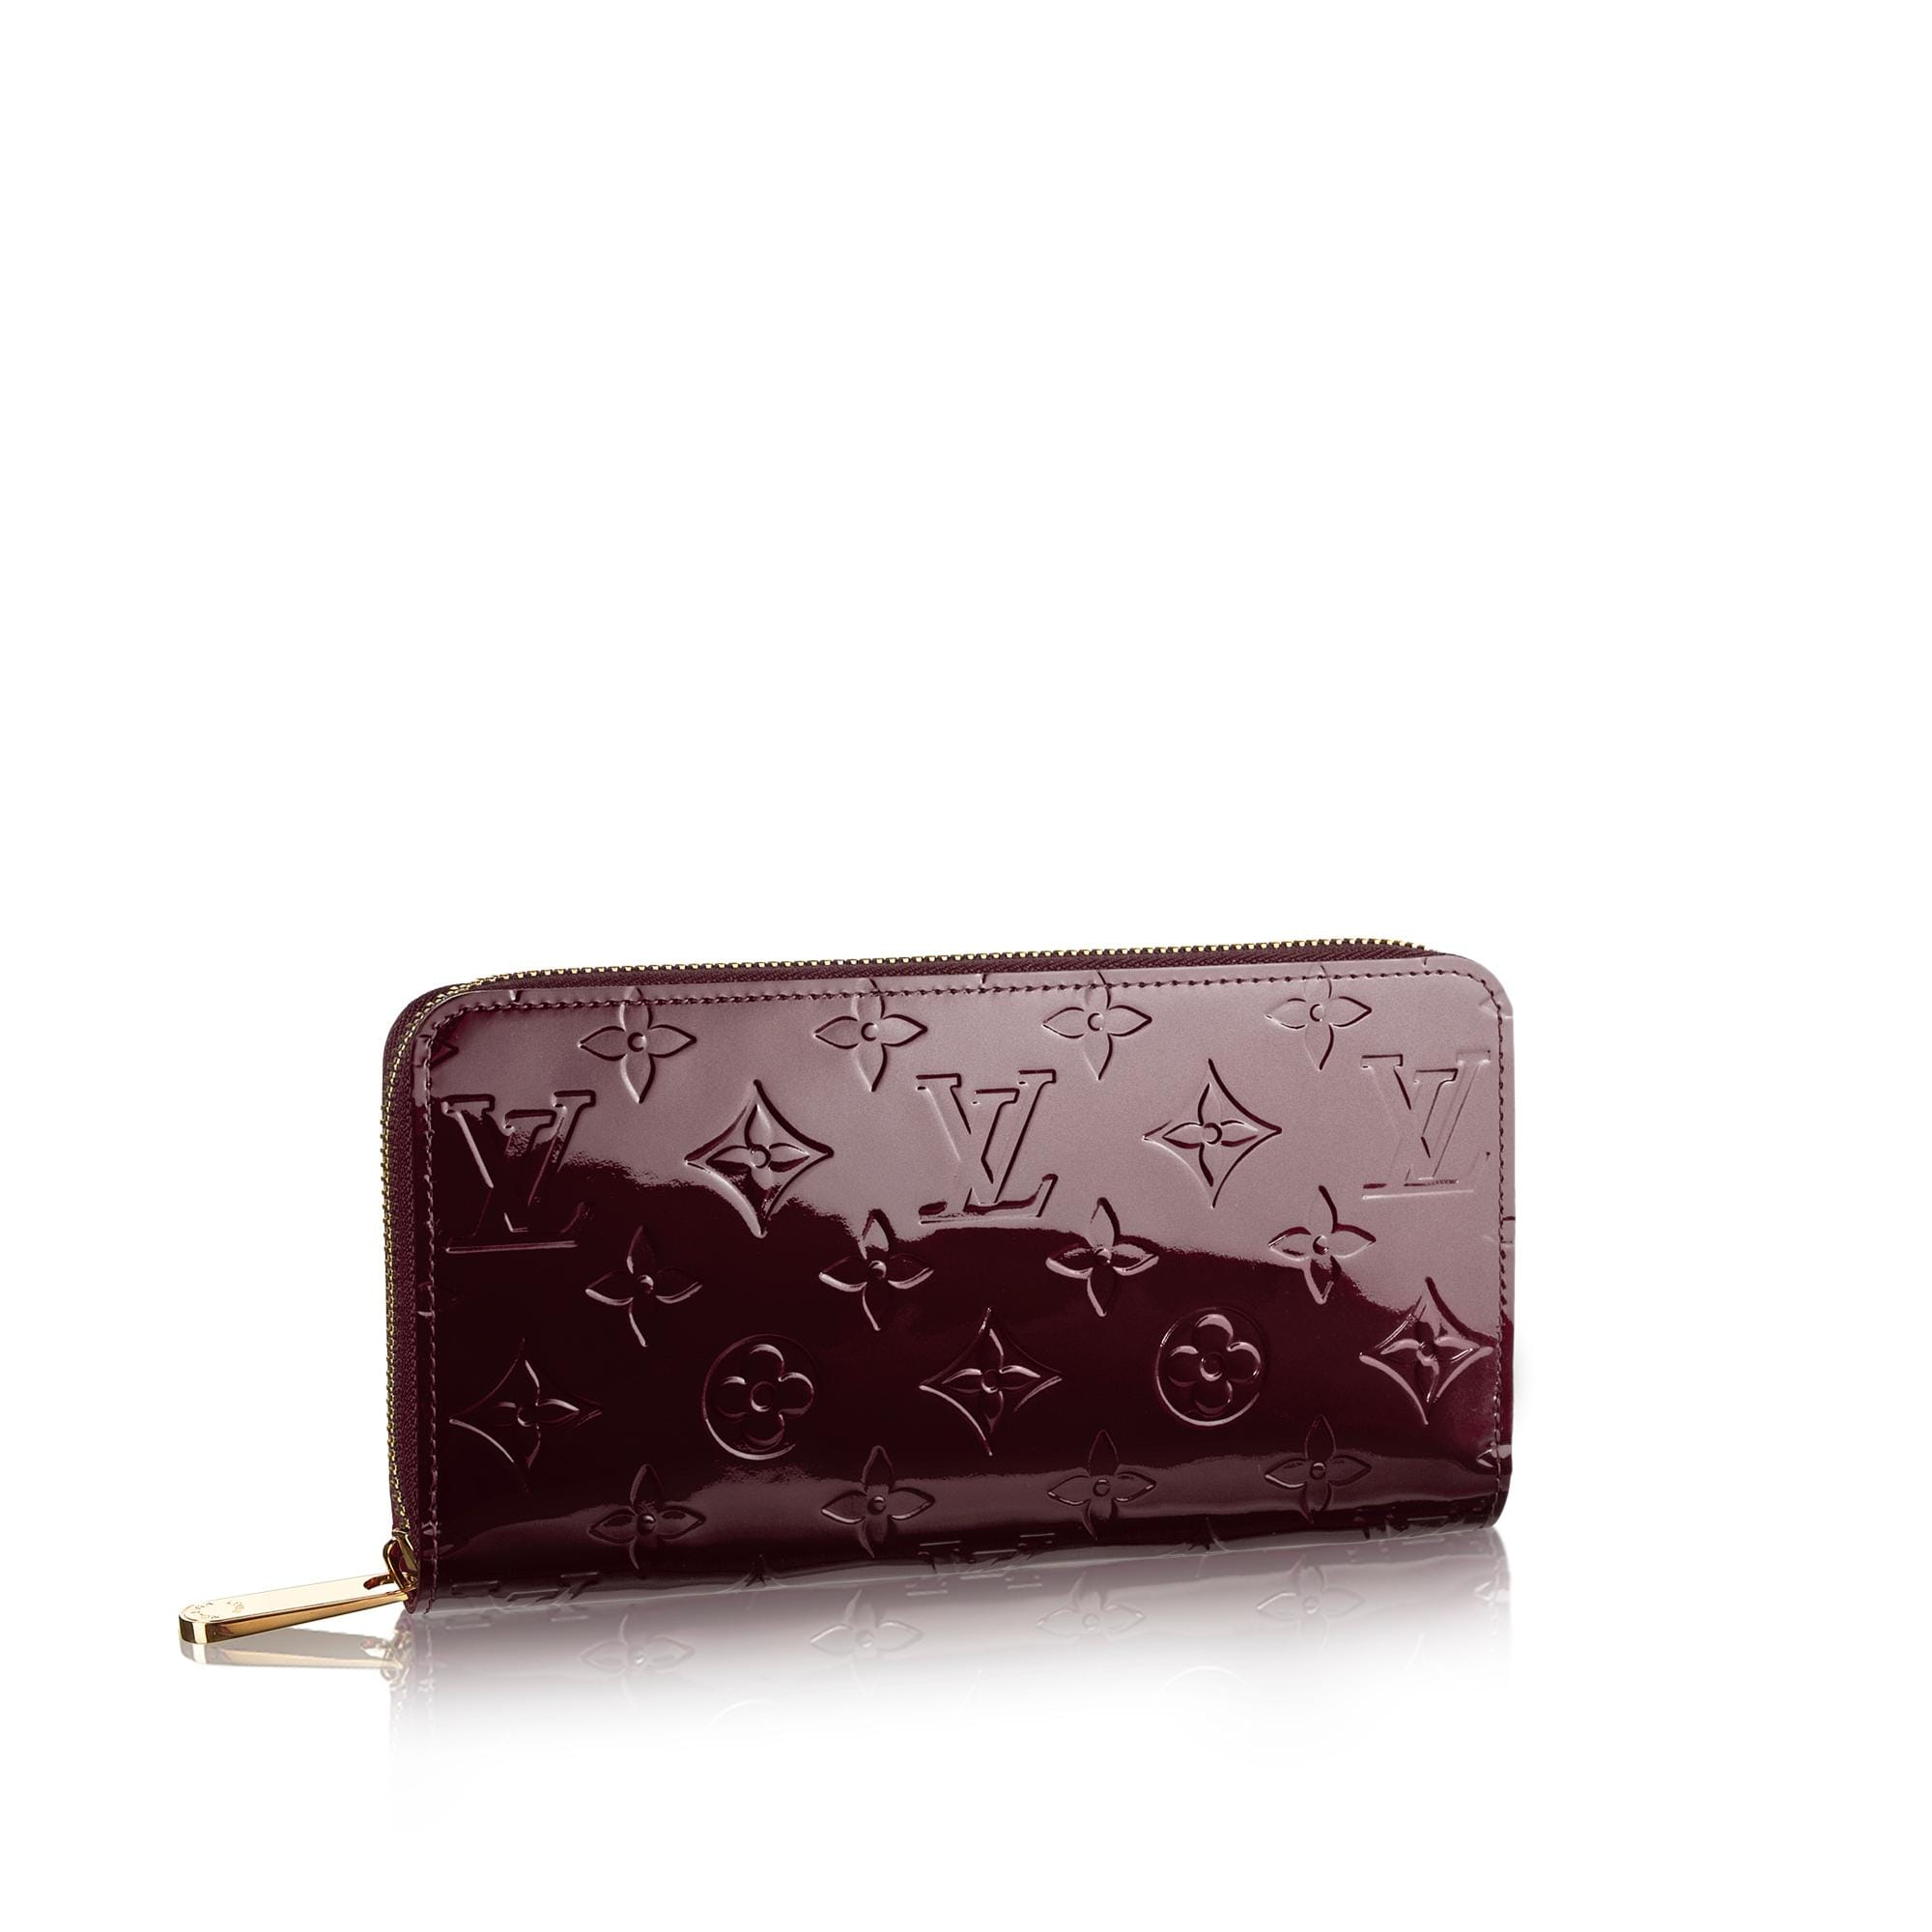 Zippy Wallet Monogram Vernis Leather  Small Leather Goods